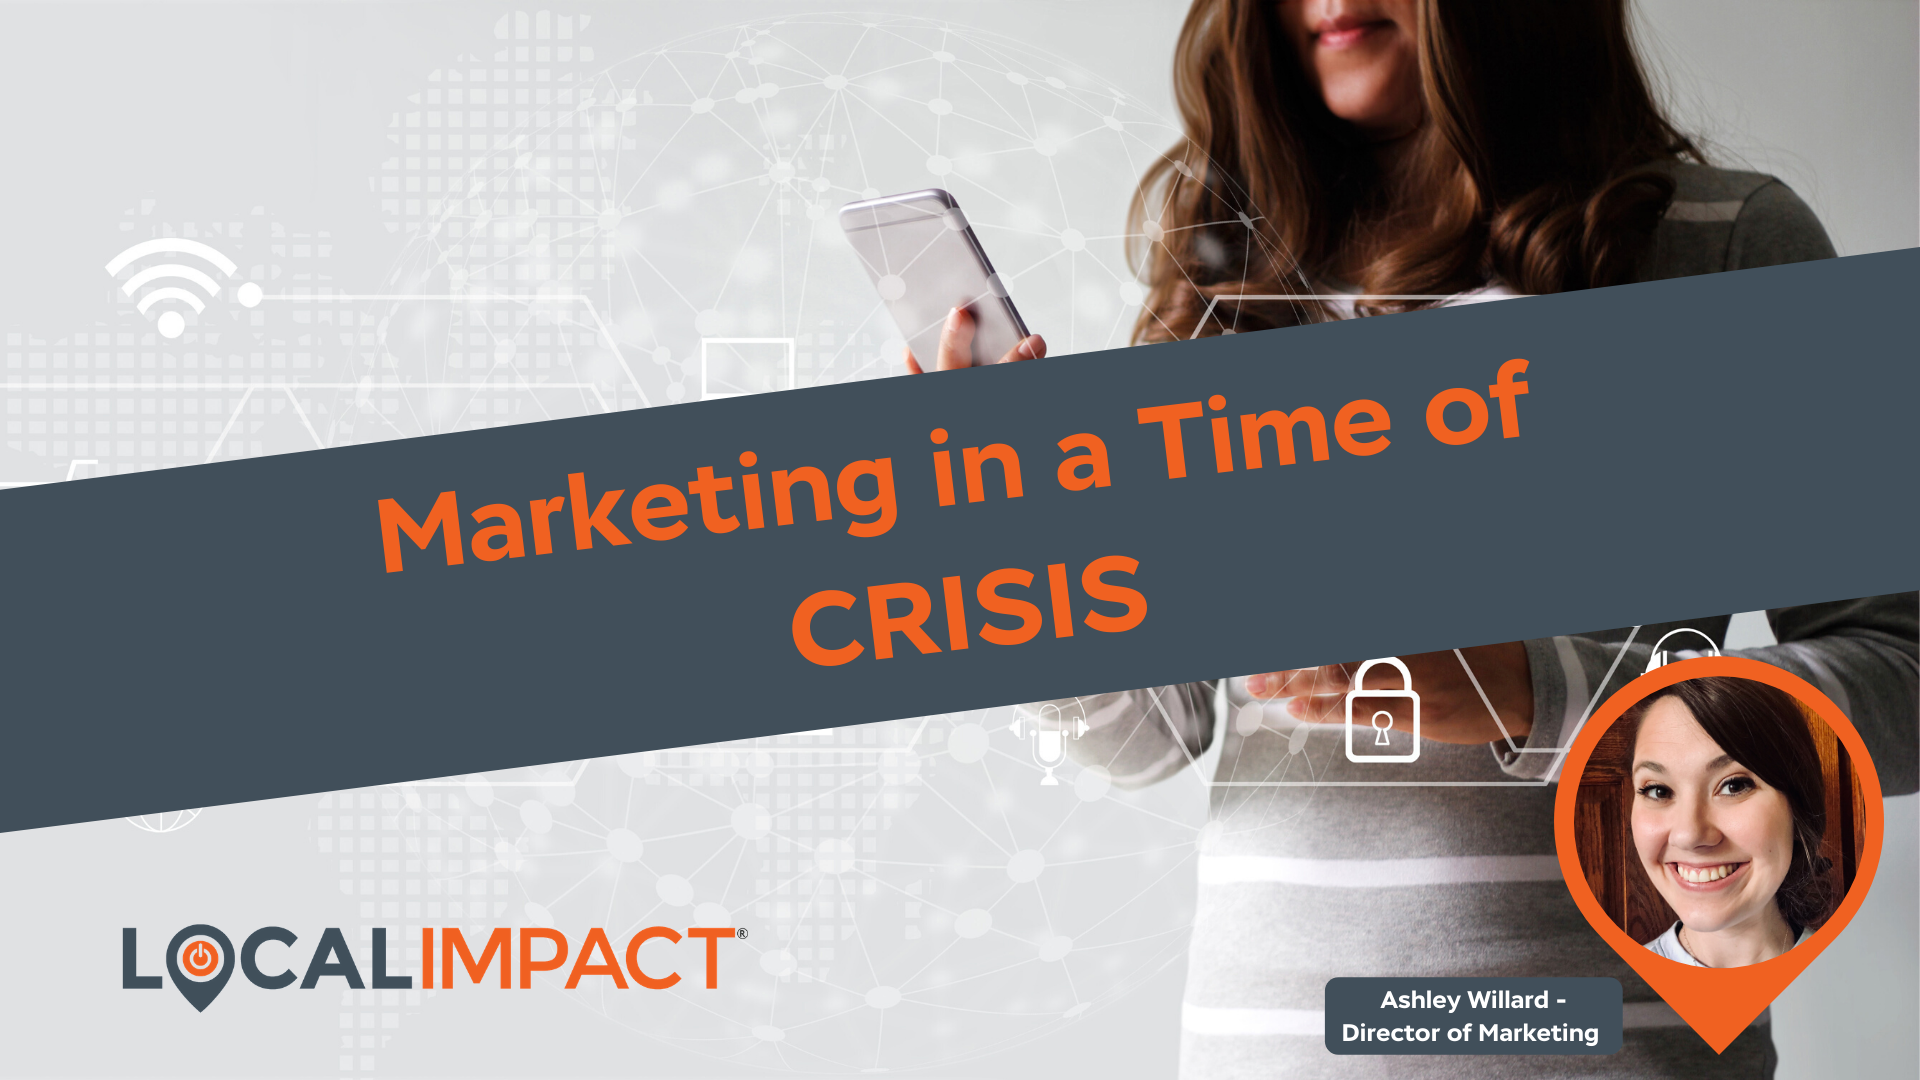 Marketing in a Time of Crisis- Digital Marketing WV - Local Impact Blog